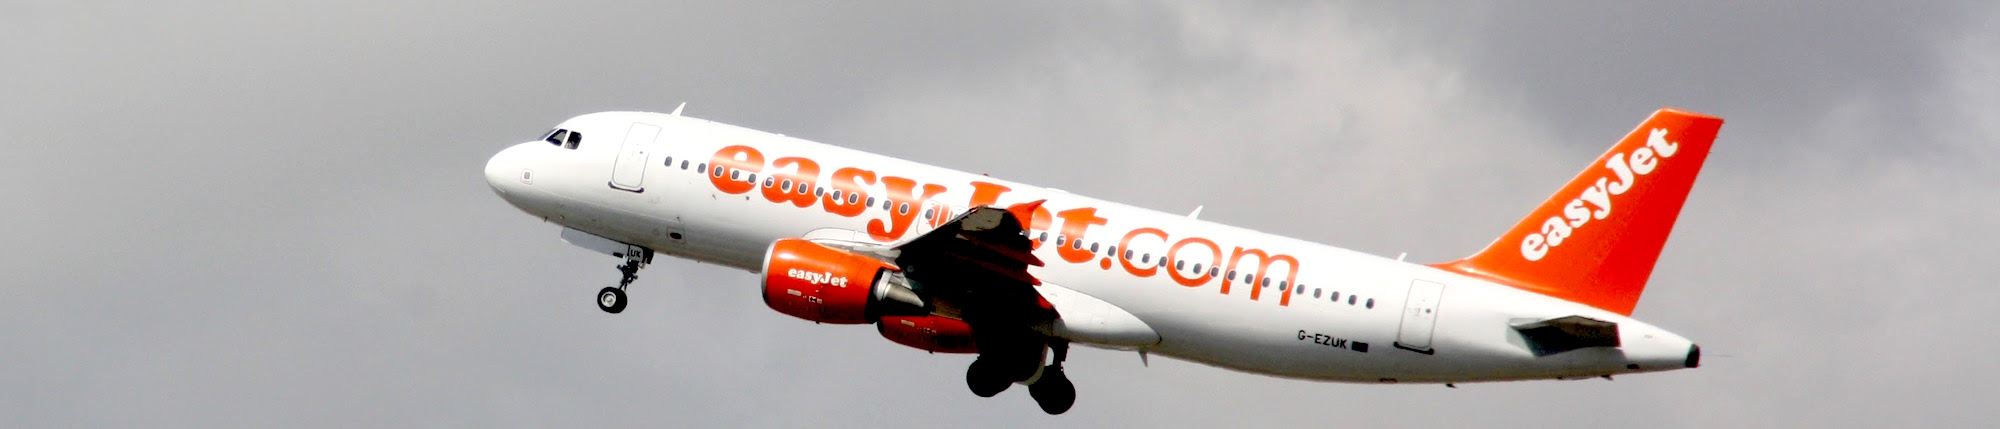 Best time to book flights for Liverpool (LPL) to Pula (PUY) flights with EasyJet at AirHint